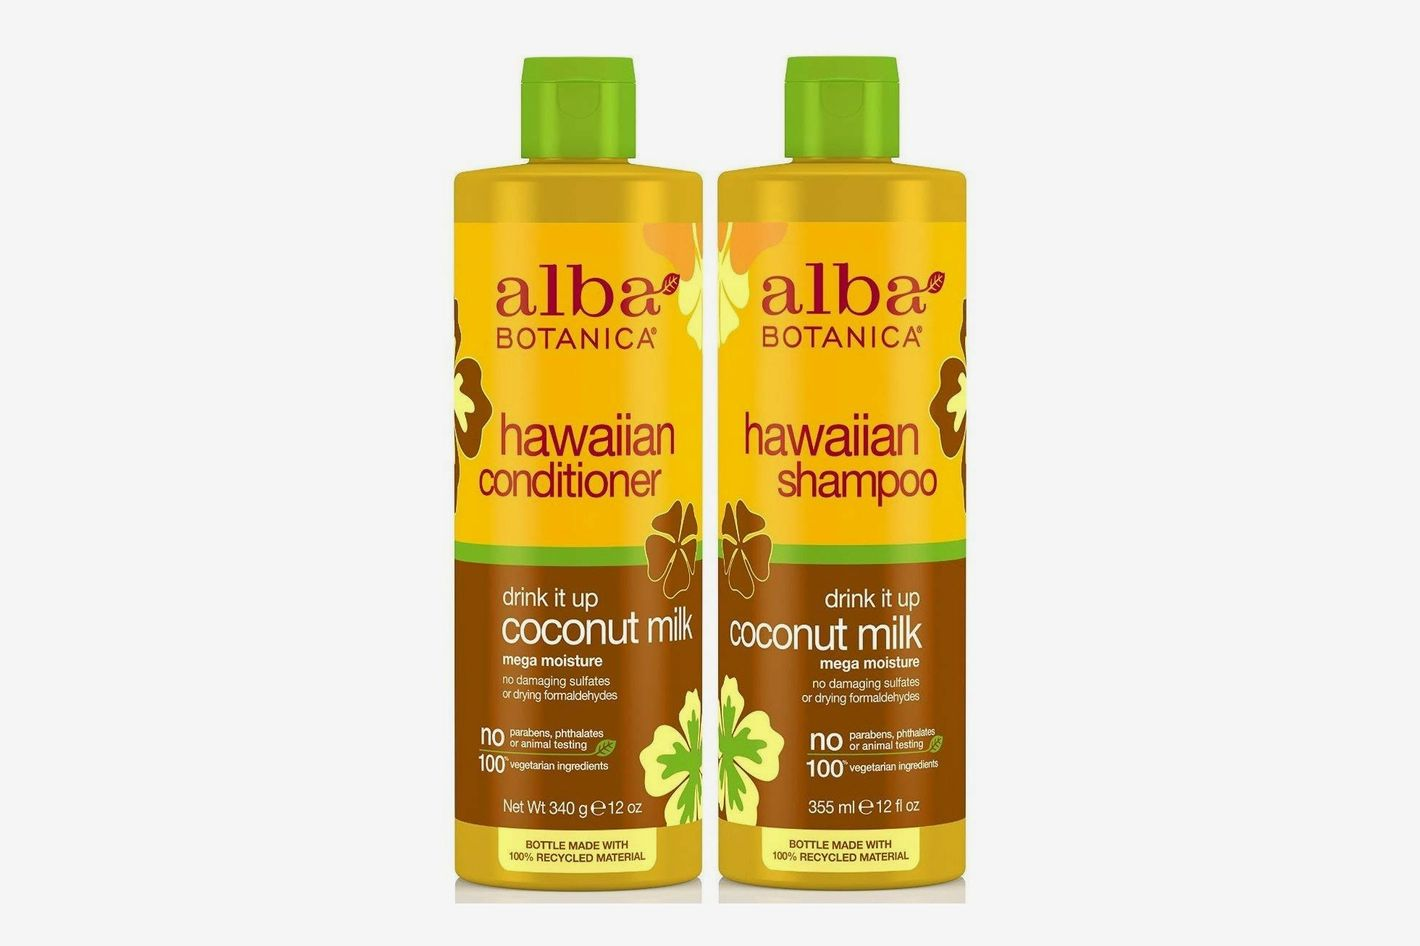 Alba Botanica Drink It Up Coconut Milk, Hawaiian Duo Set Shampoo and Conditioner